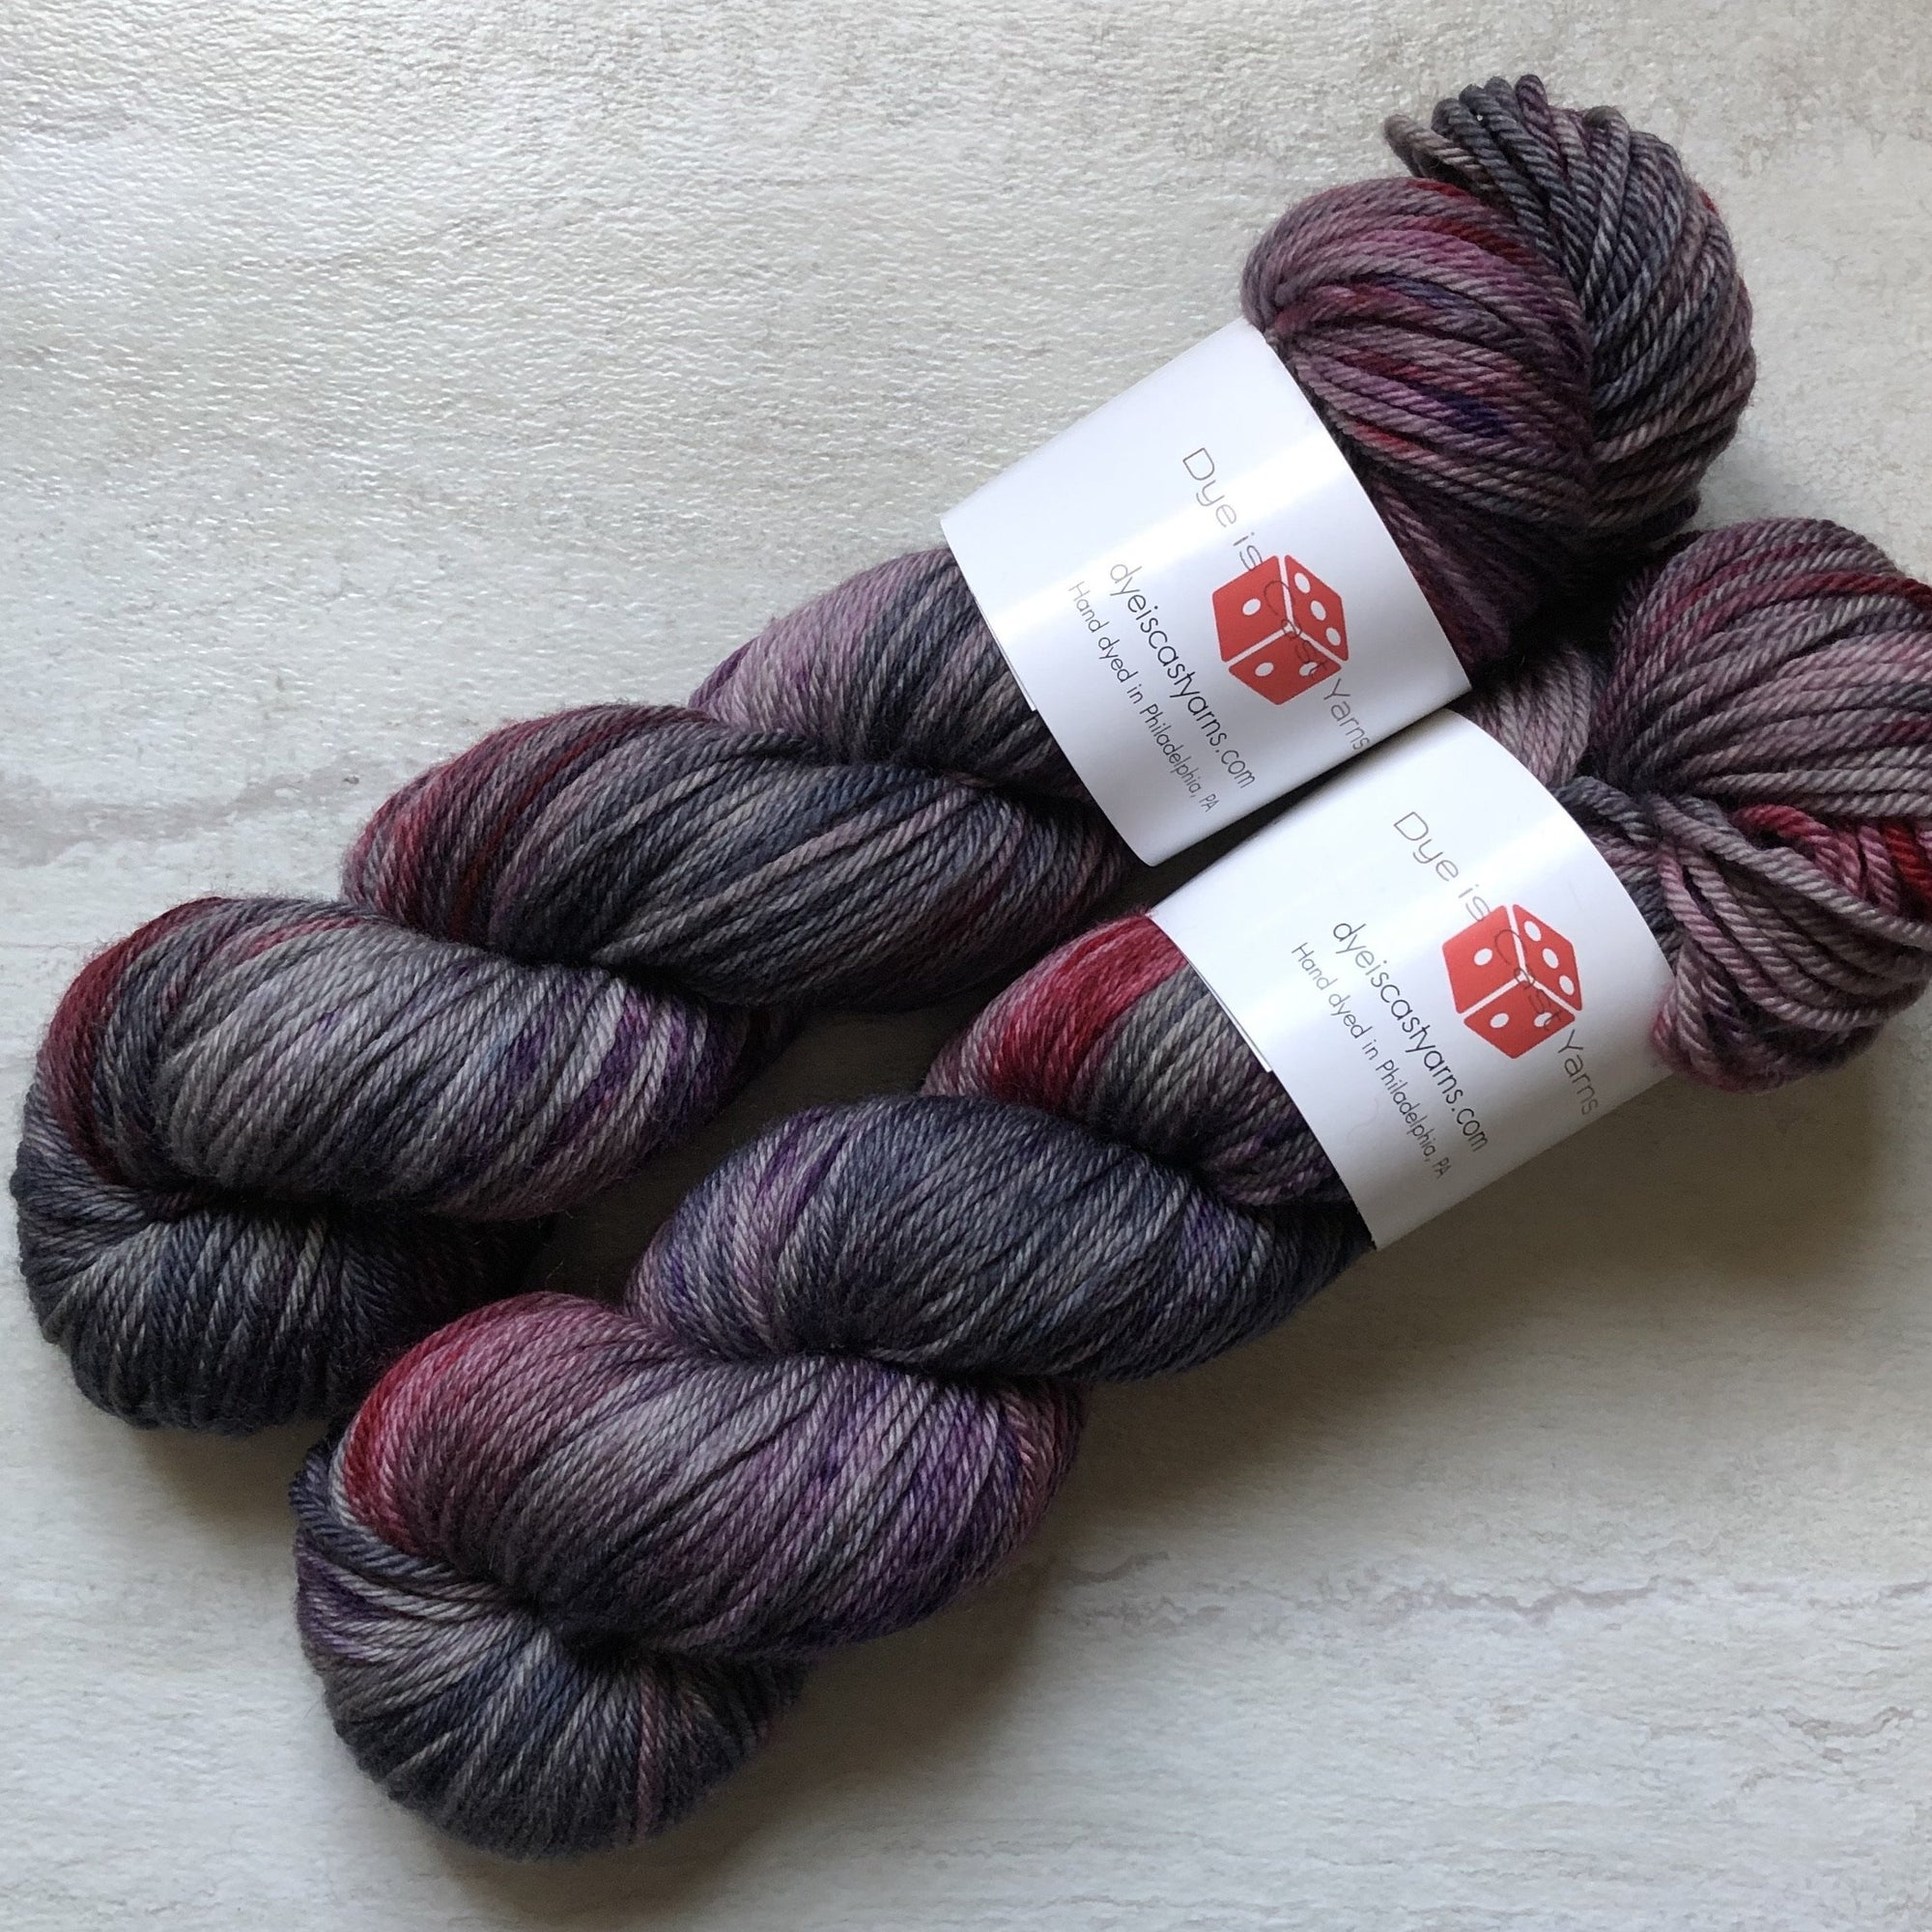 Sanguine Rose - Squish Like Grape Worsted